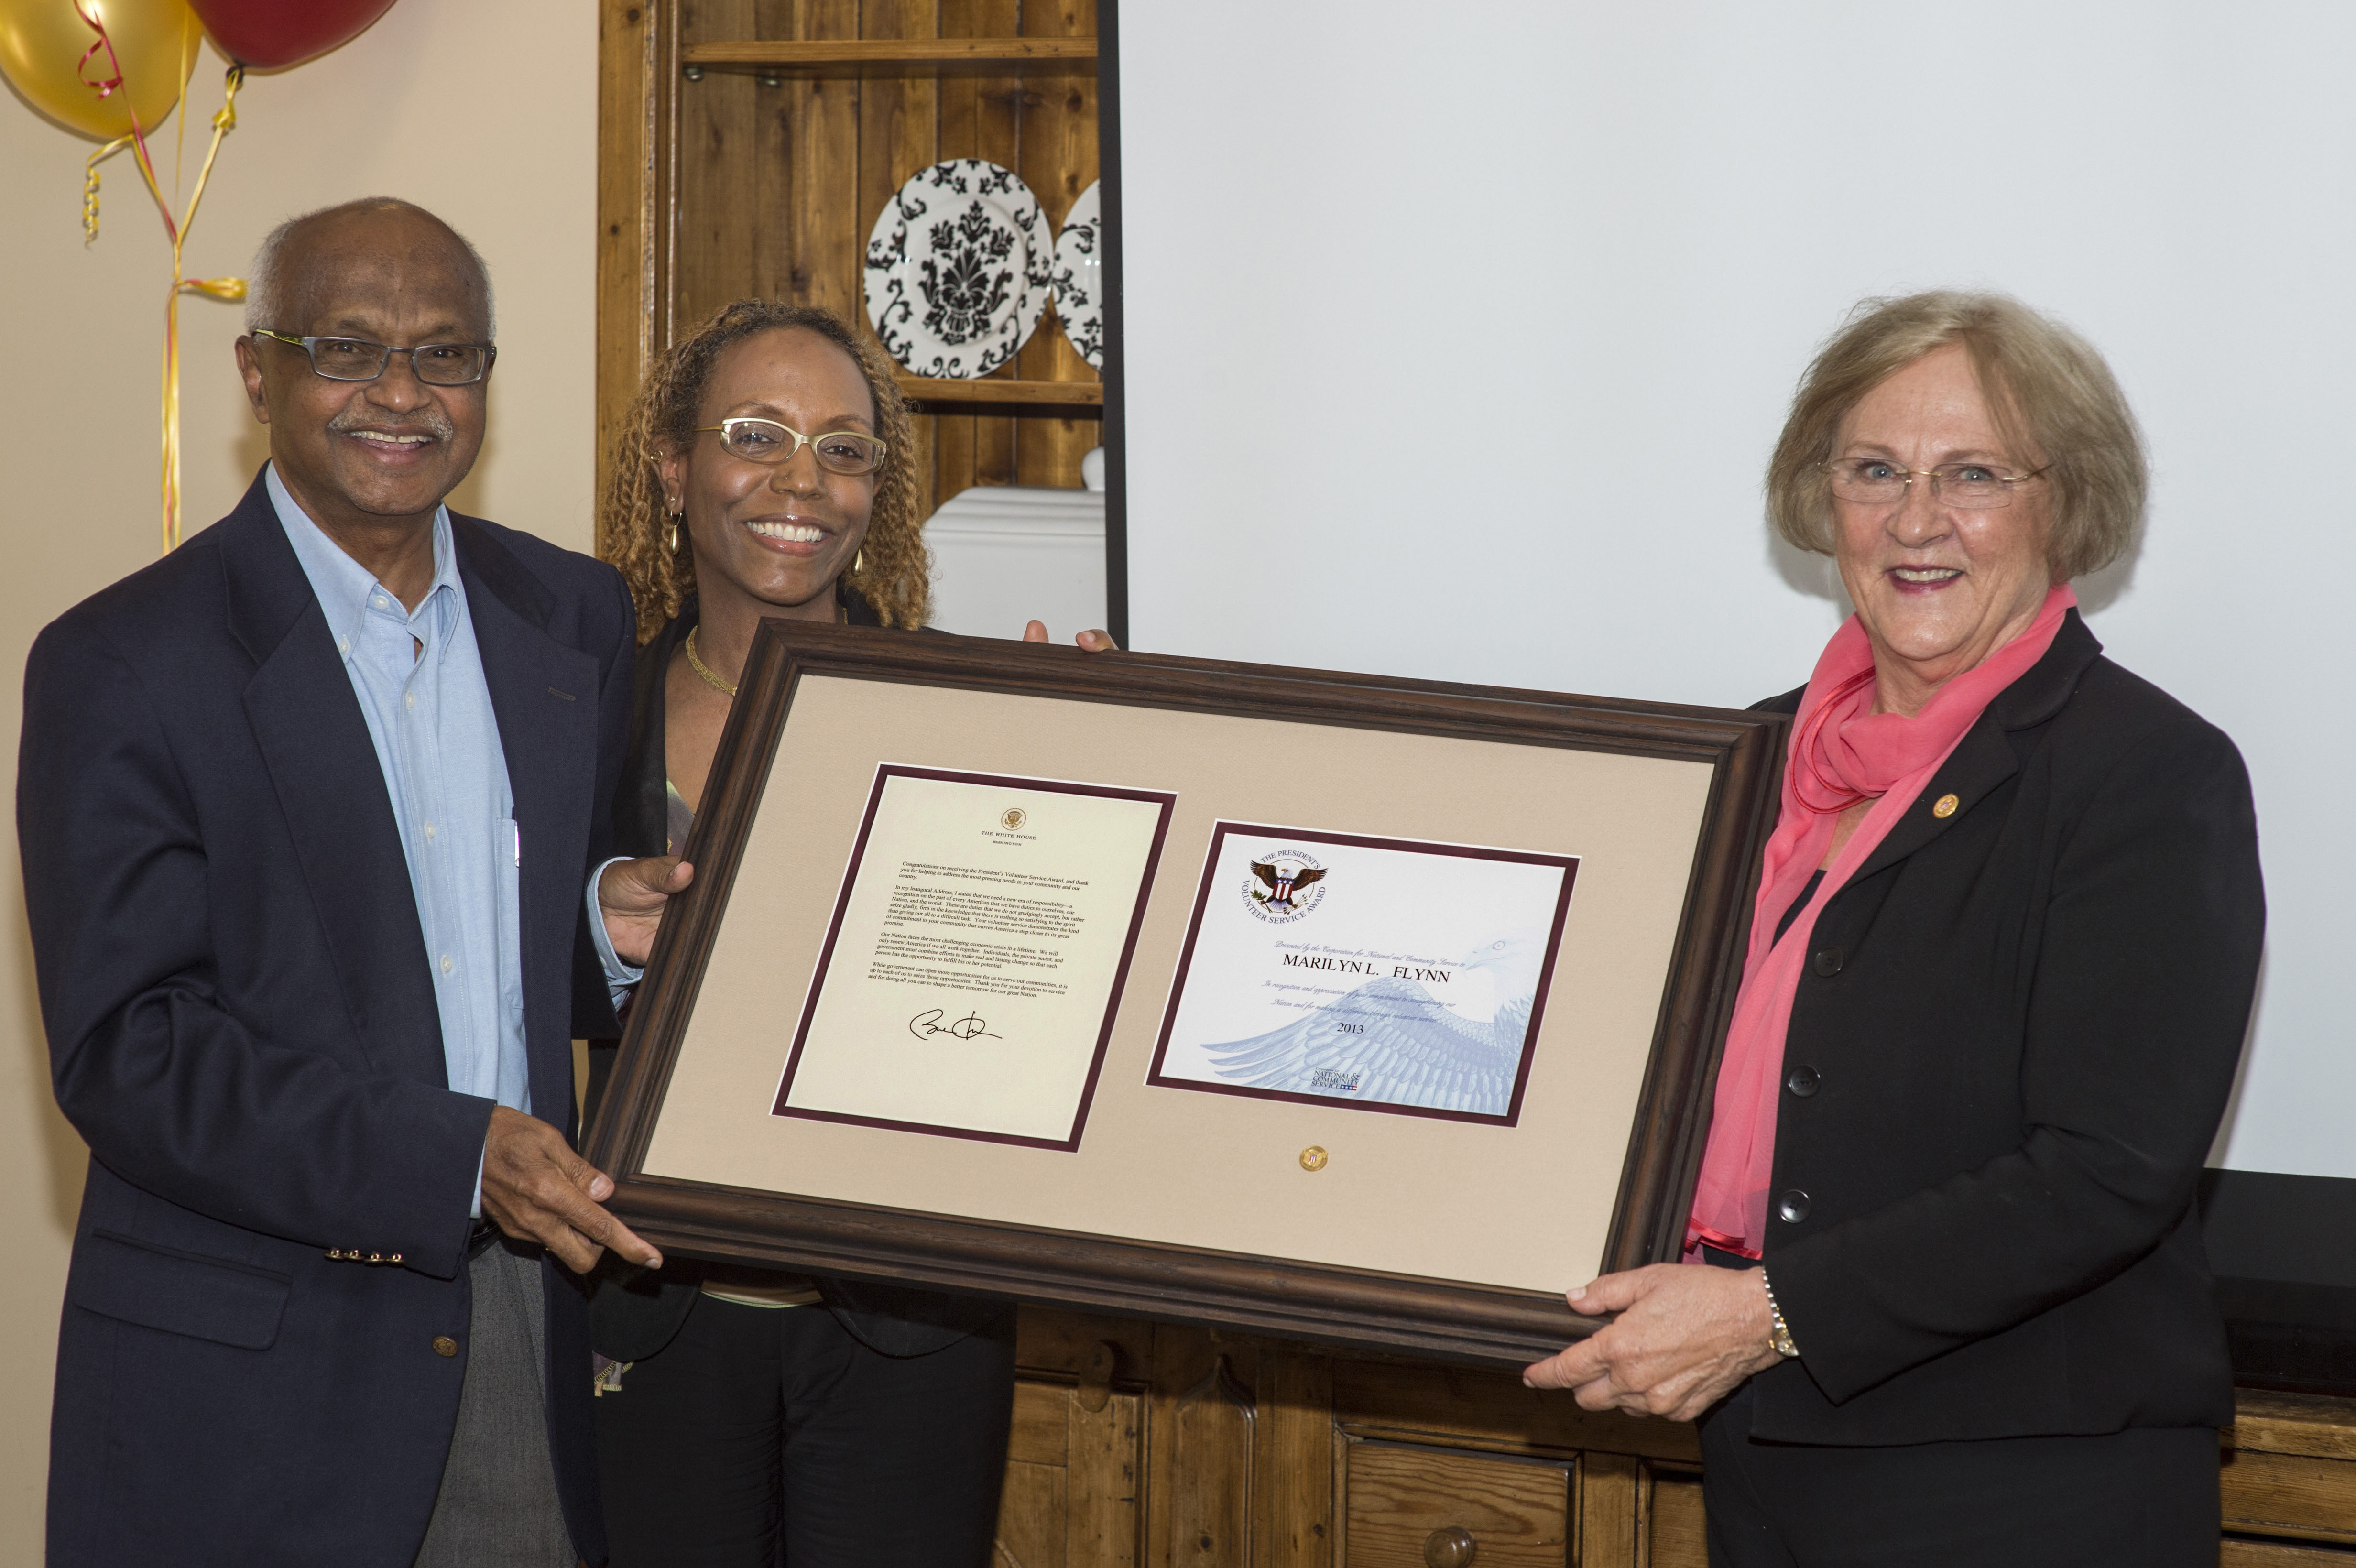 Clinical Professors Murali Nair and Renee Smith-Maddox present the President's Volunteer Service Award to Dean Marilyn L. Flynn. (Photo/Andrew Taylor)